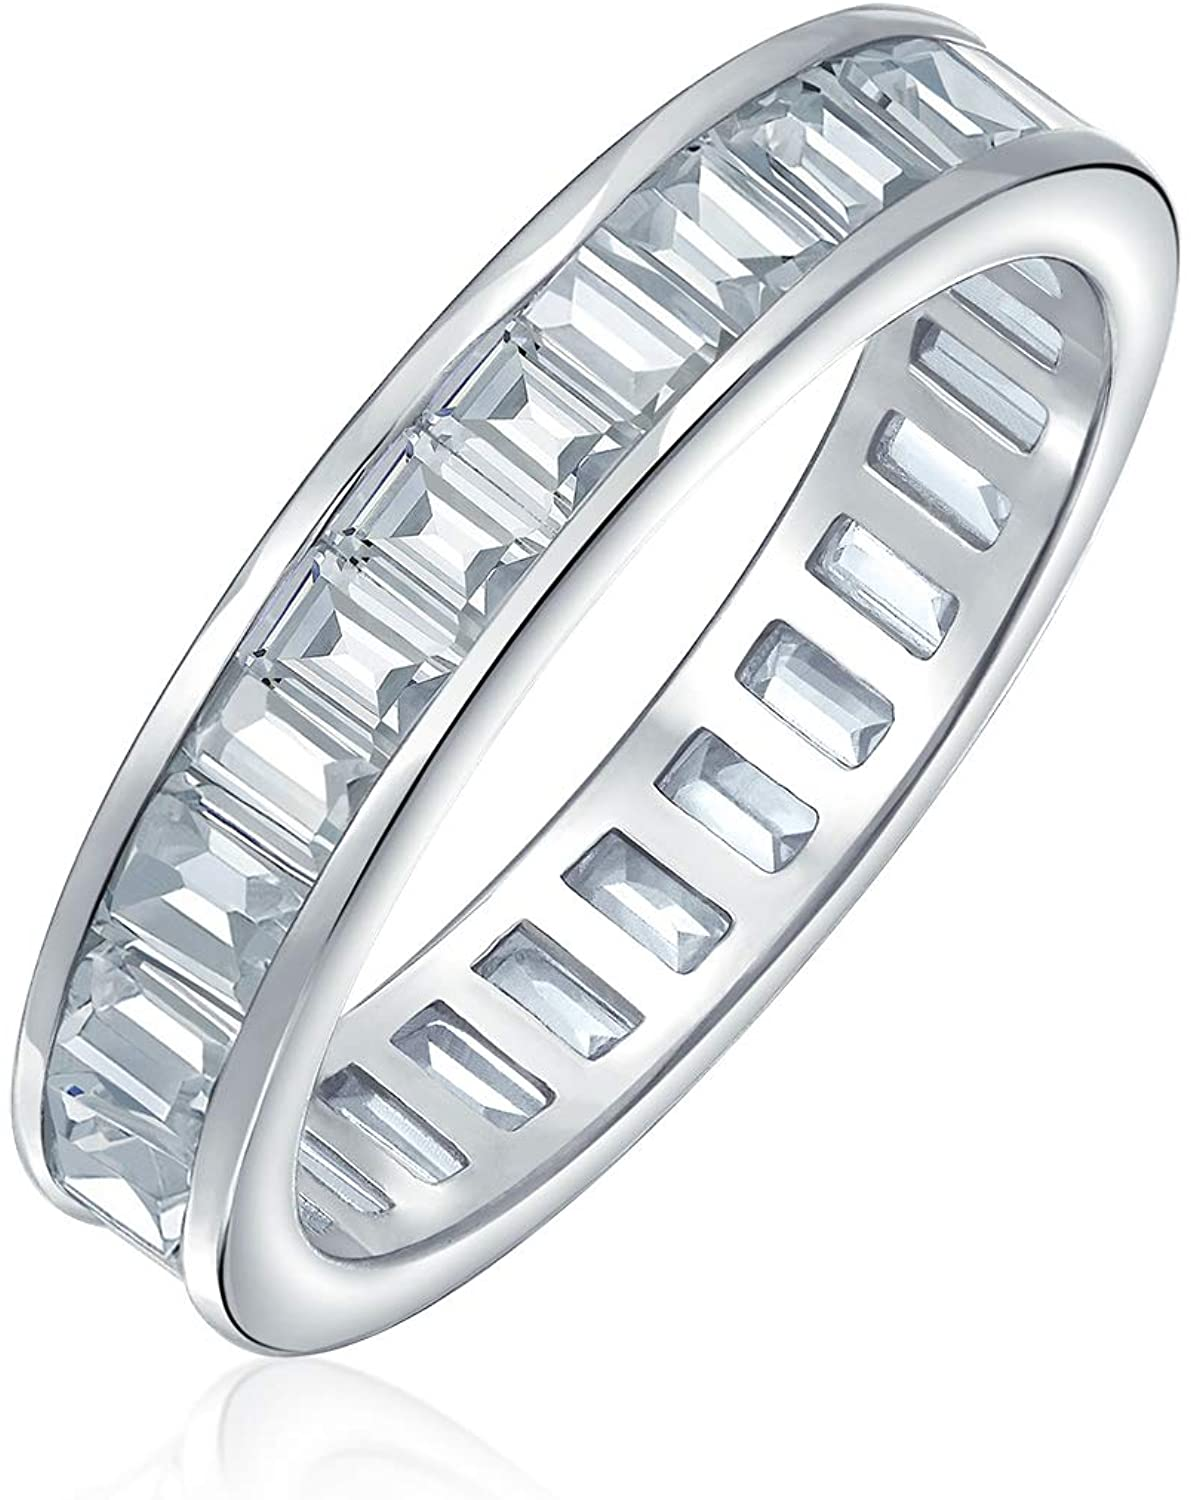 Cubic Zirconia Channel Set Rectangle Baguette CZ Eternity Ring Wedding Band For Women 925 Sterling Silver 4MM